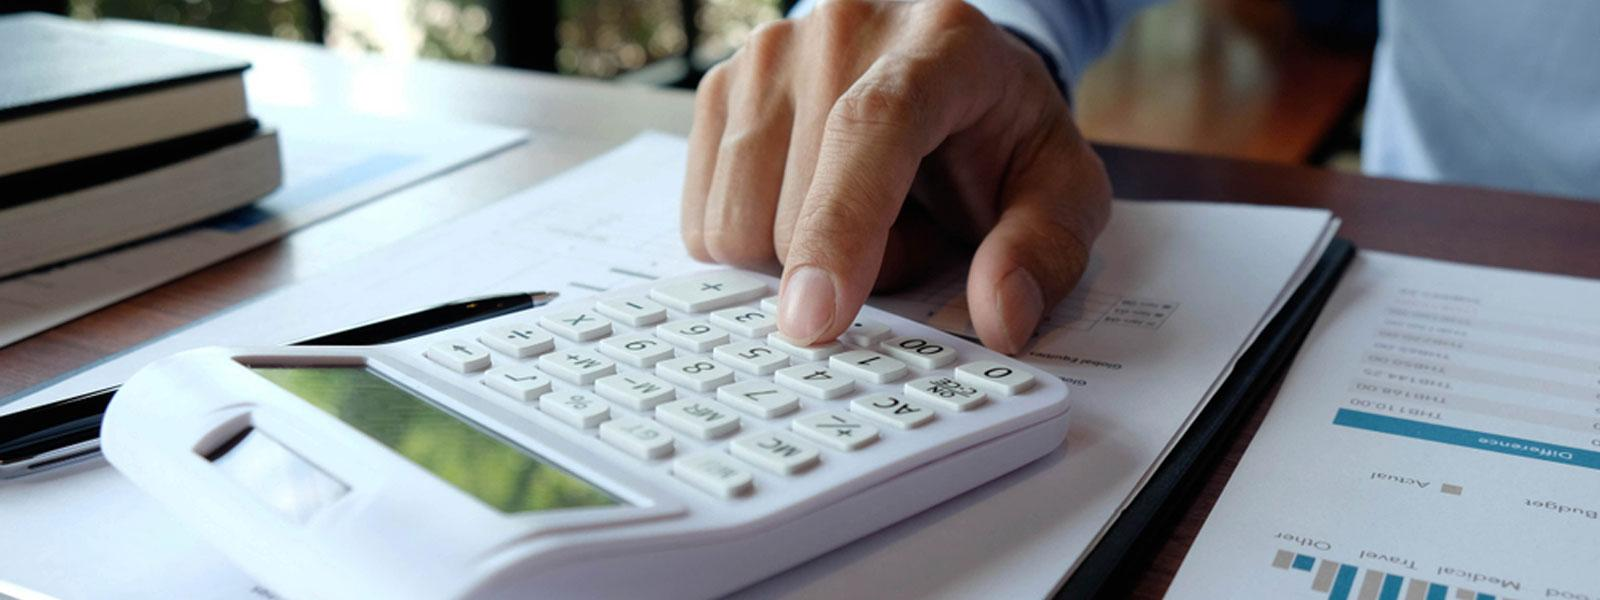 Man using calculator to work out finances for reverse VAT charge